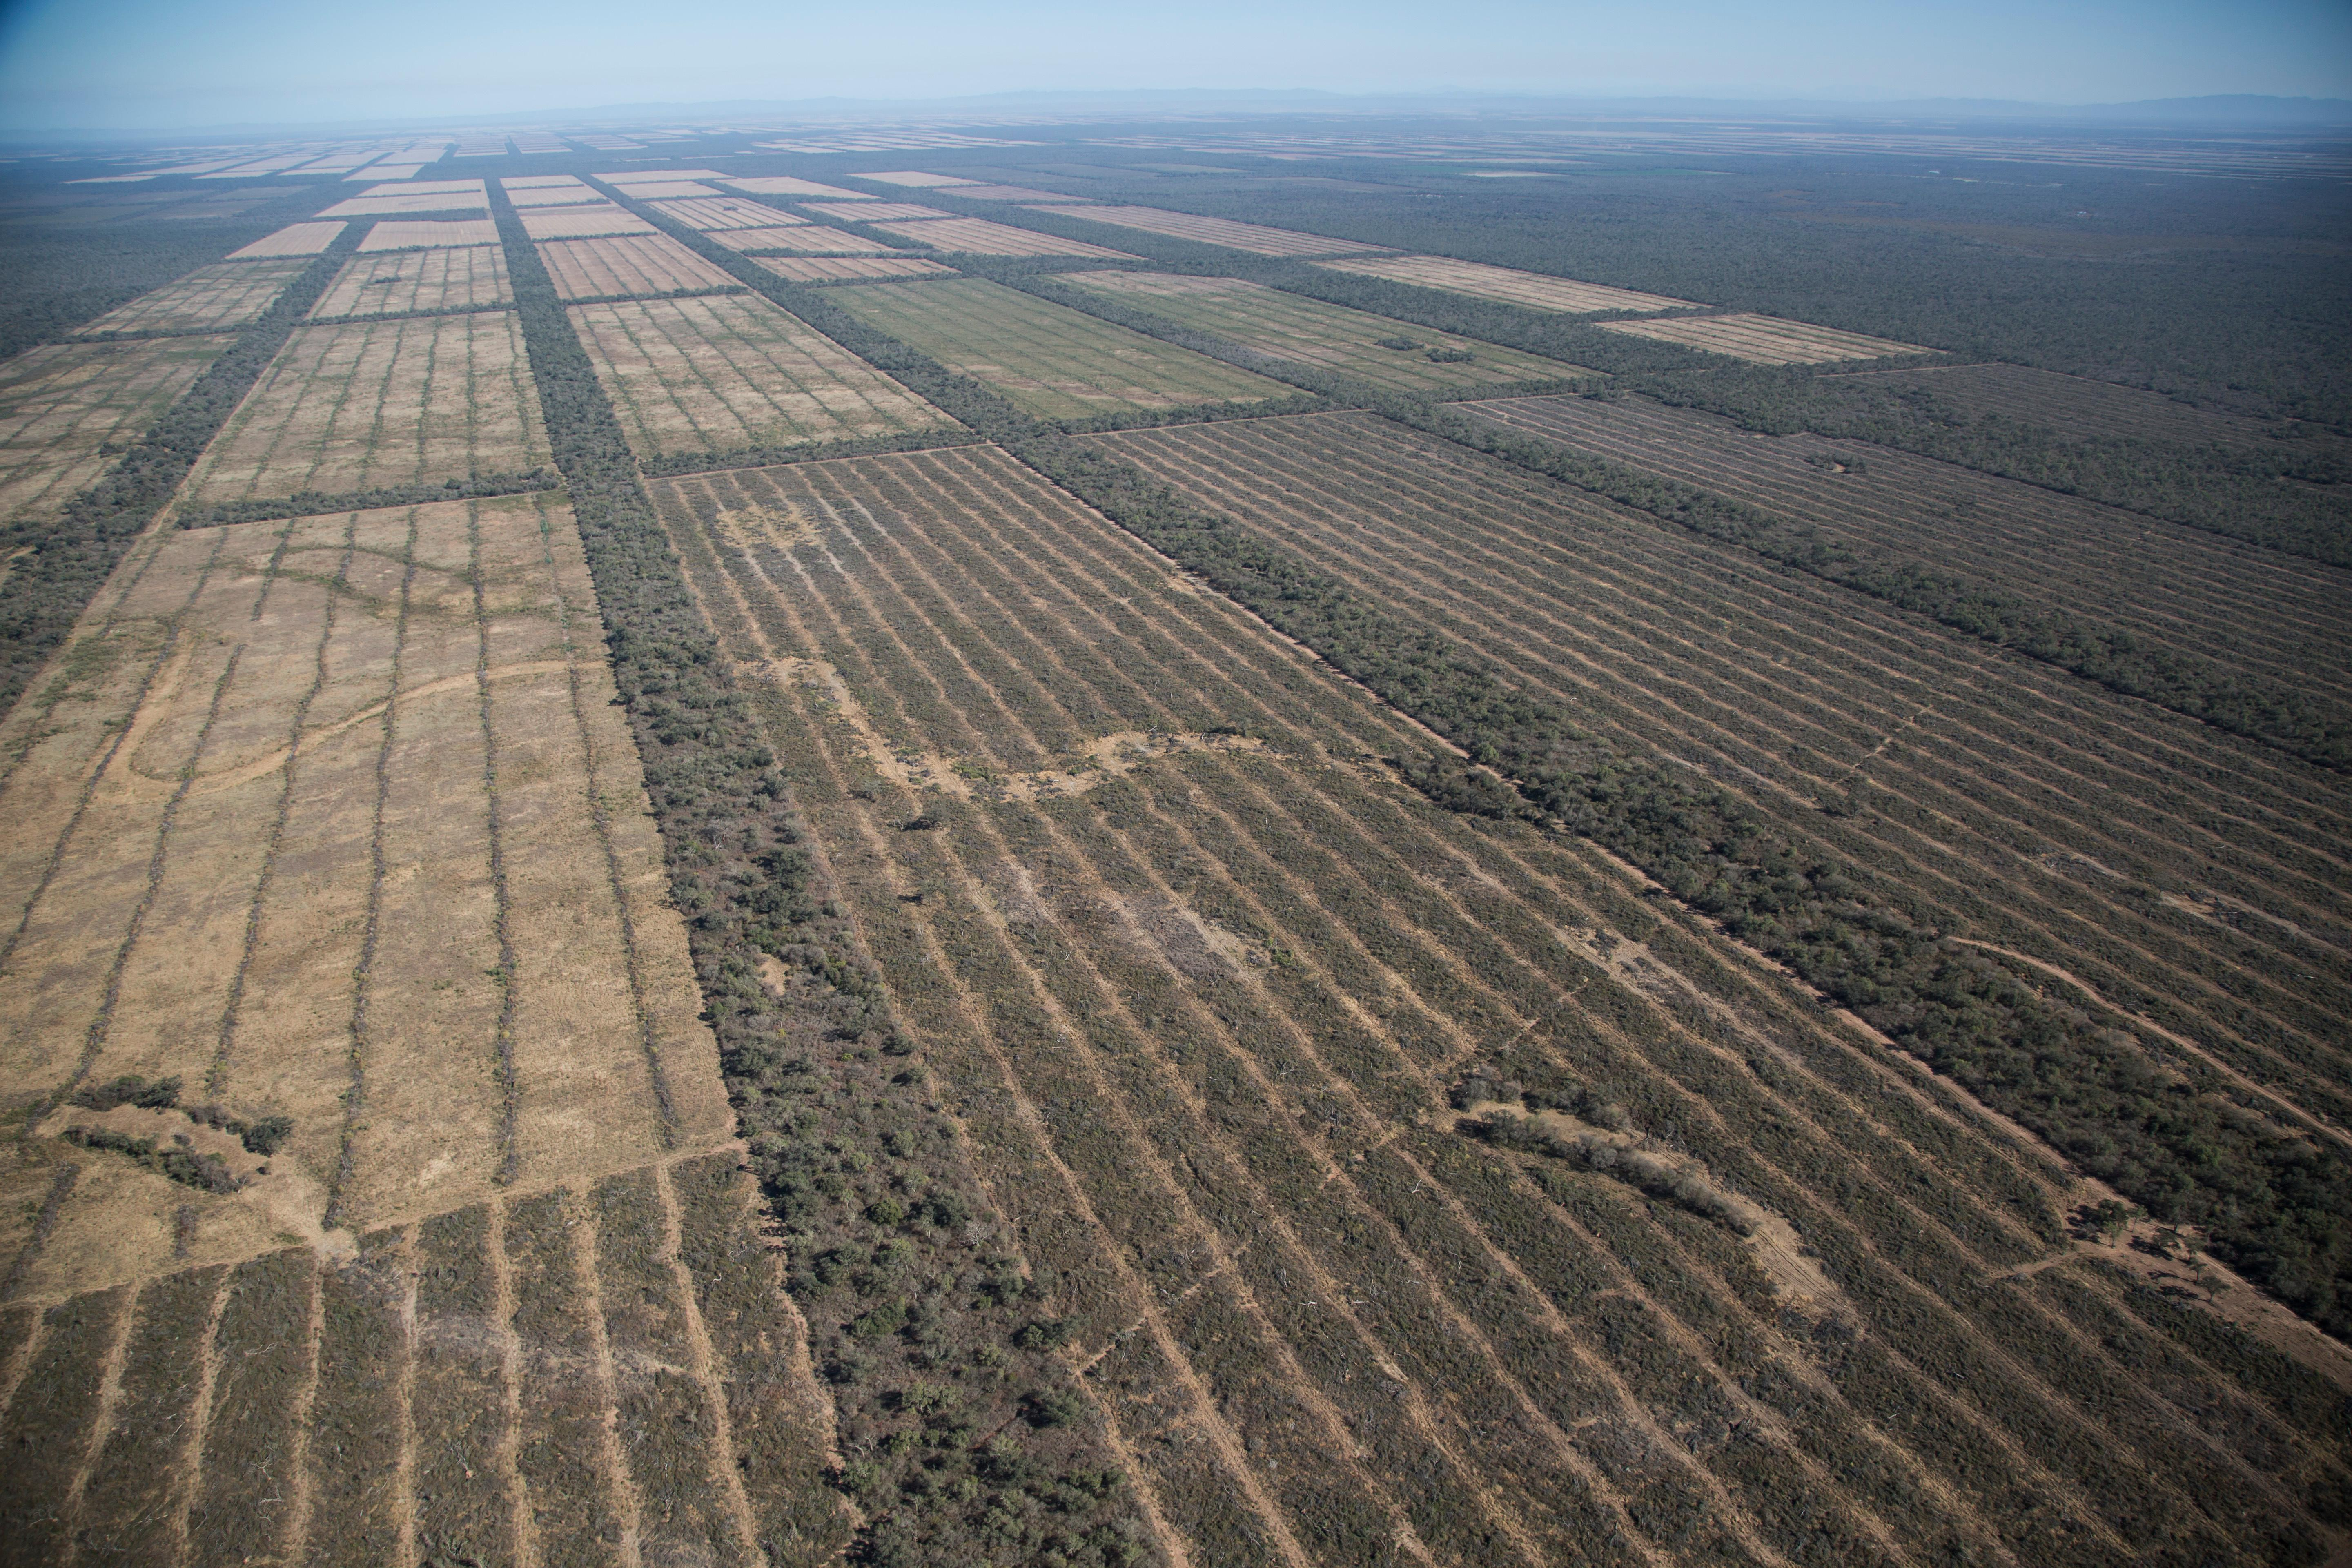 Soy destruction in Argentina leads straight to our dinner plates